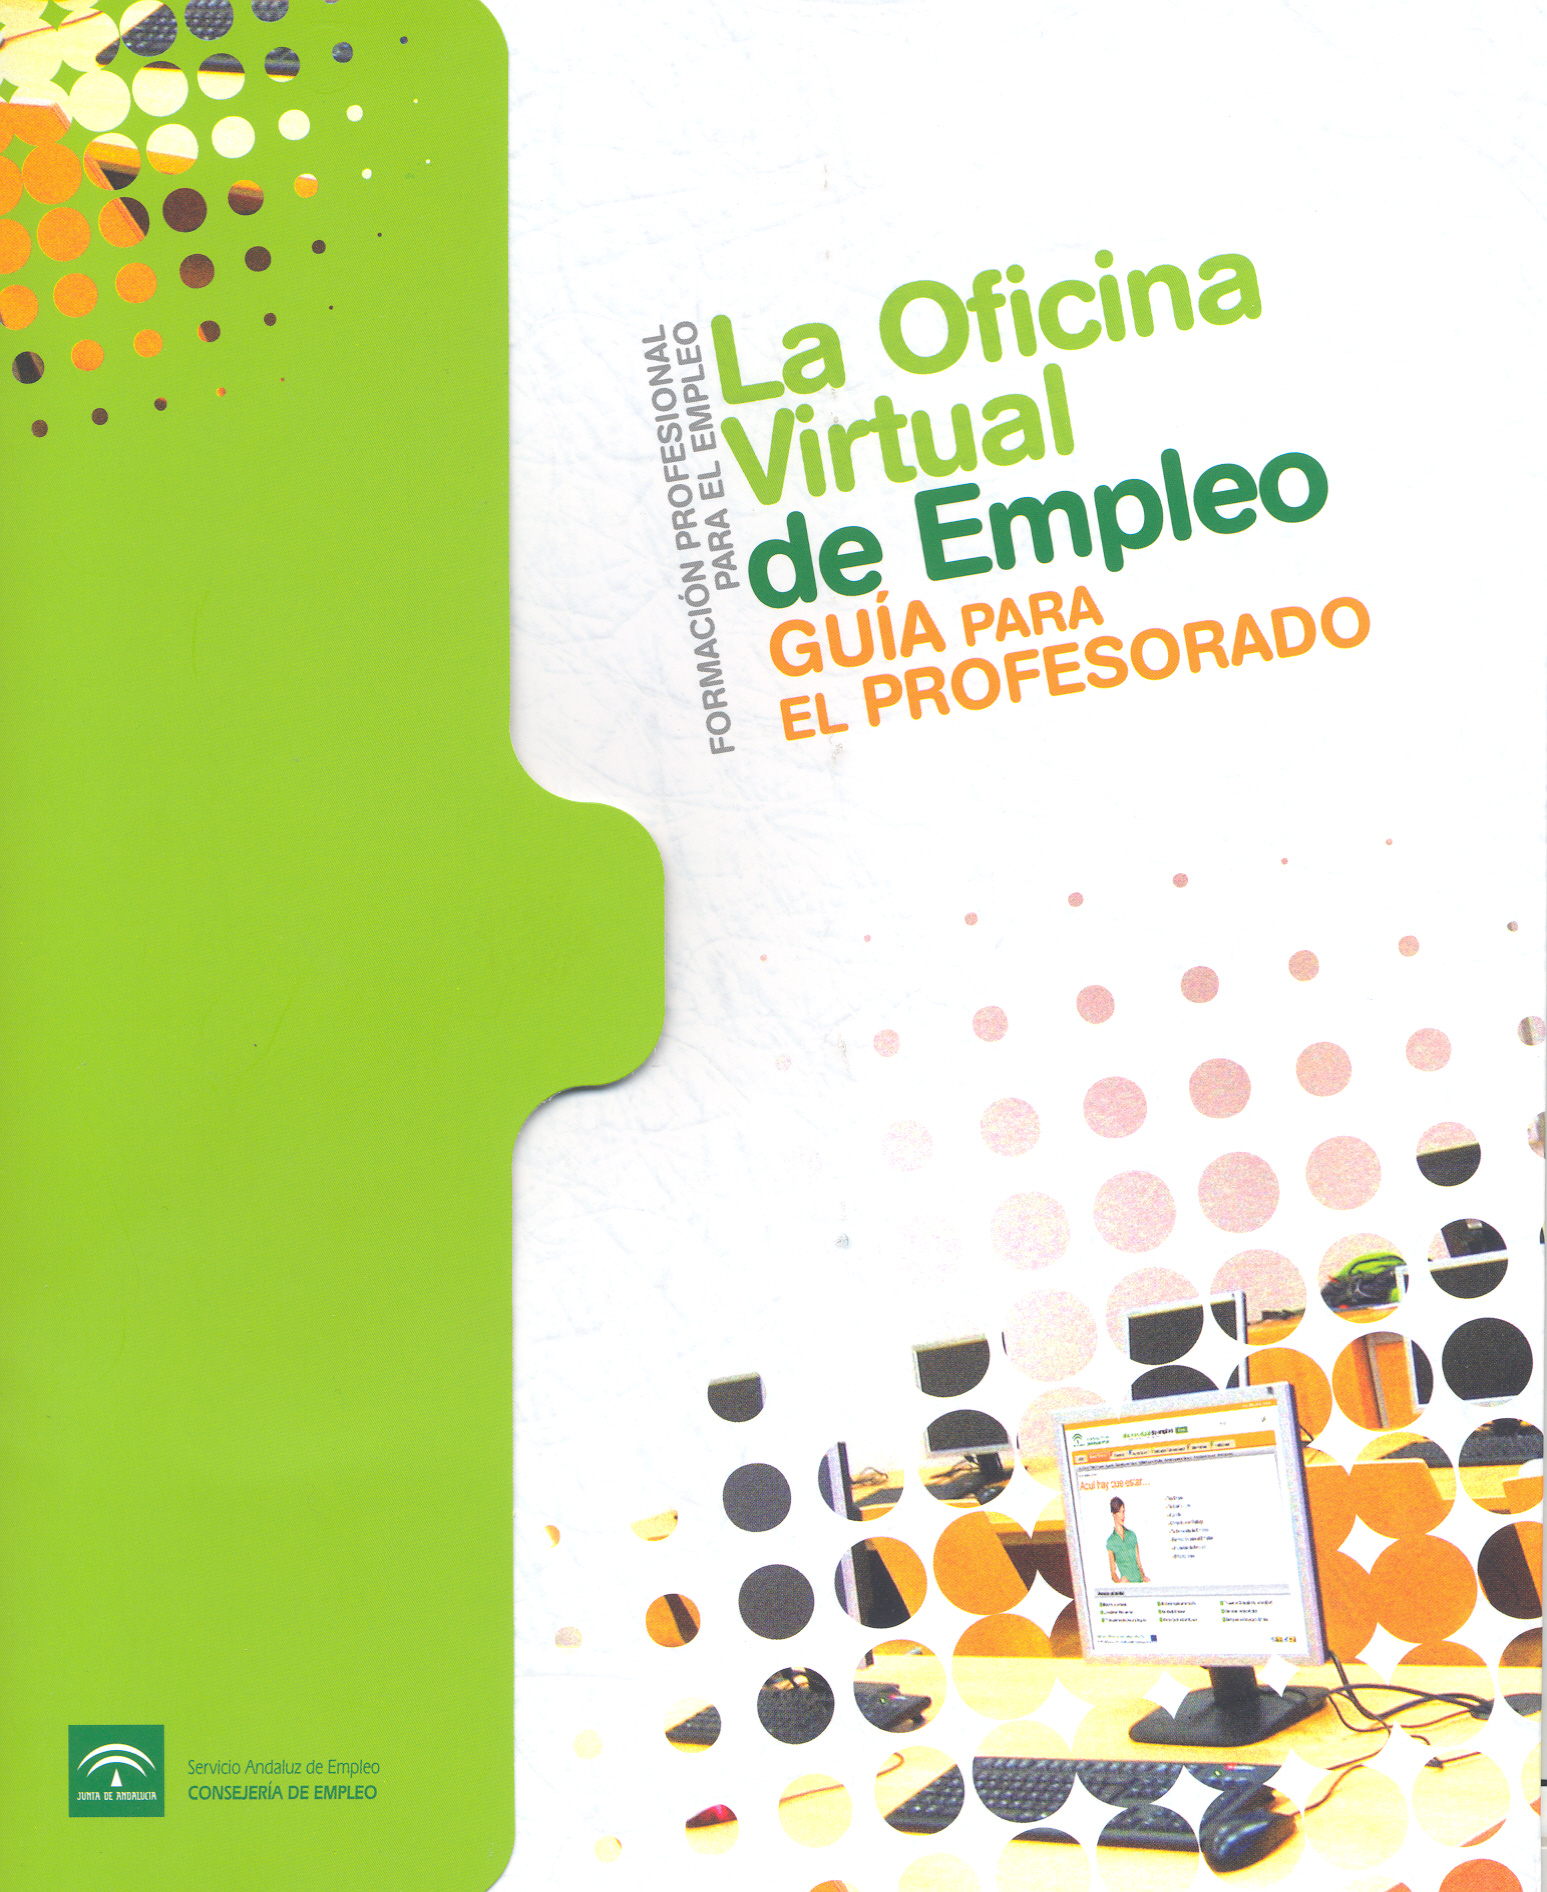 Junta de andaluc a la oficina virtual de empleo folleto for Oficina virtual del